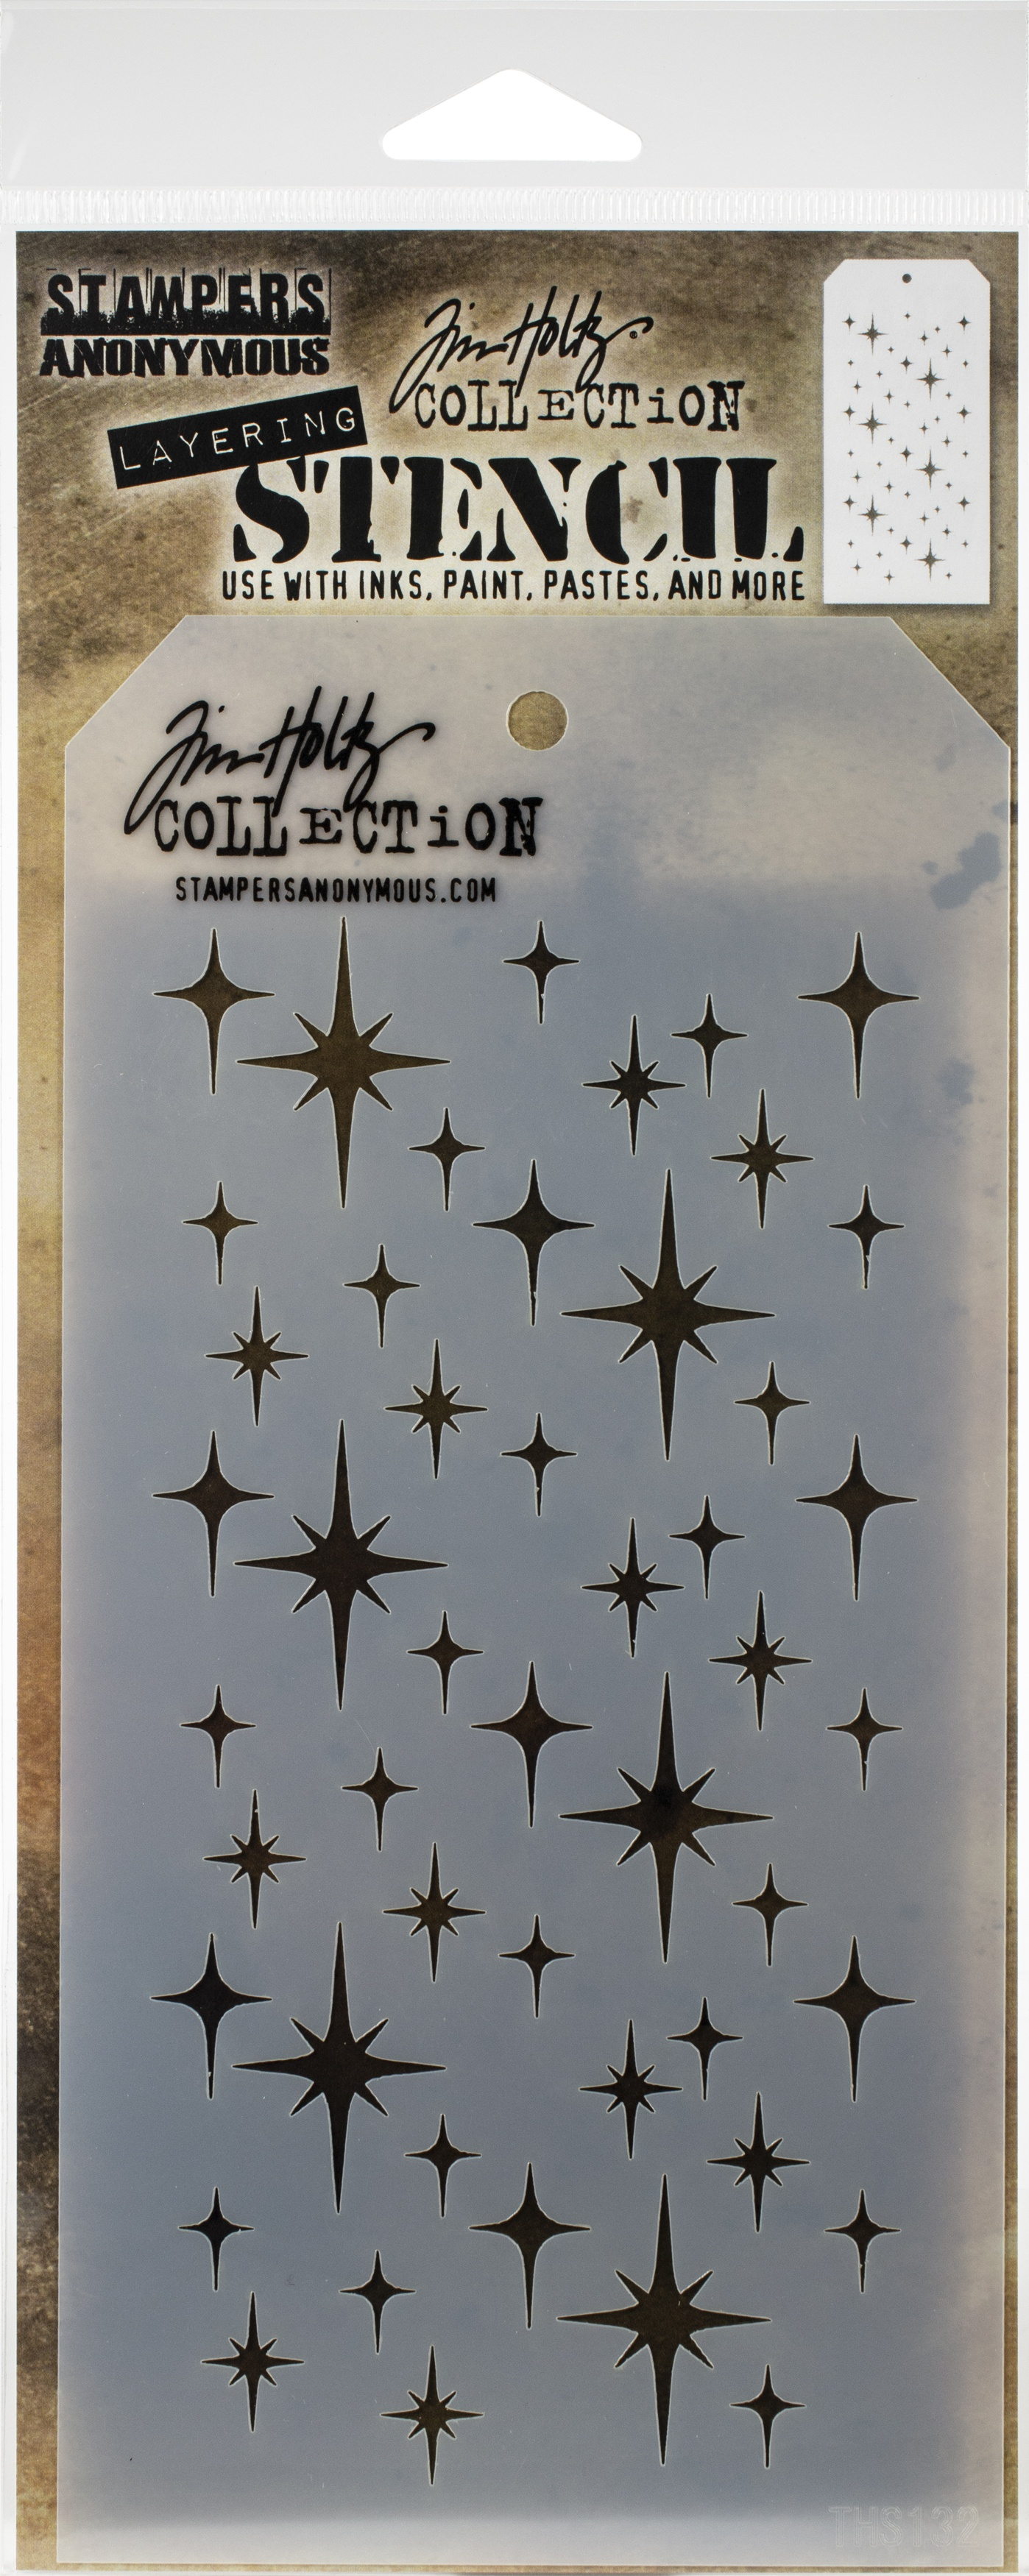 Tim Holtz Layered Stencil 4.125X8.5-Sparkle